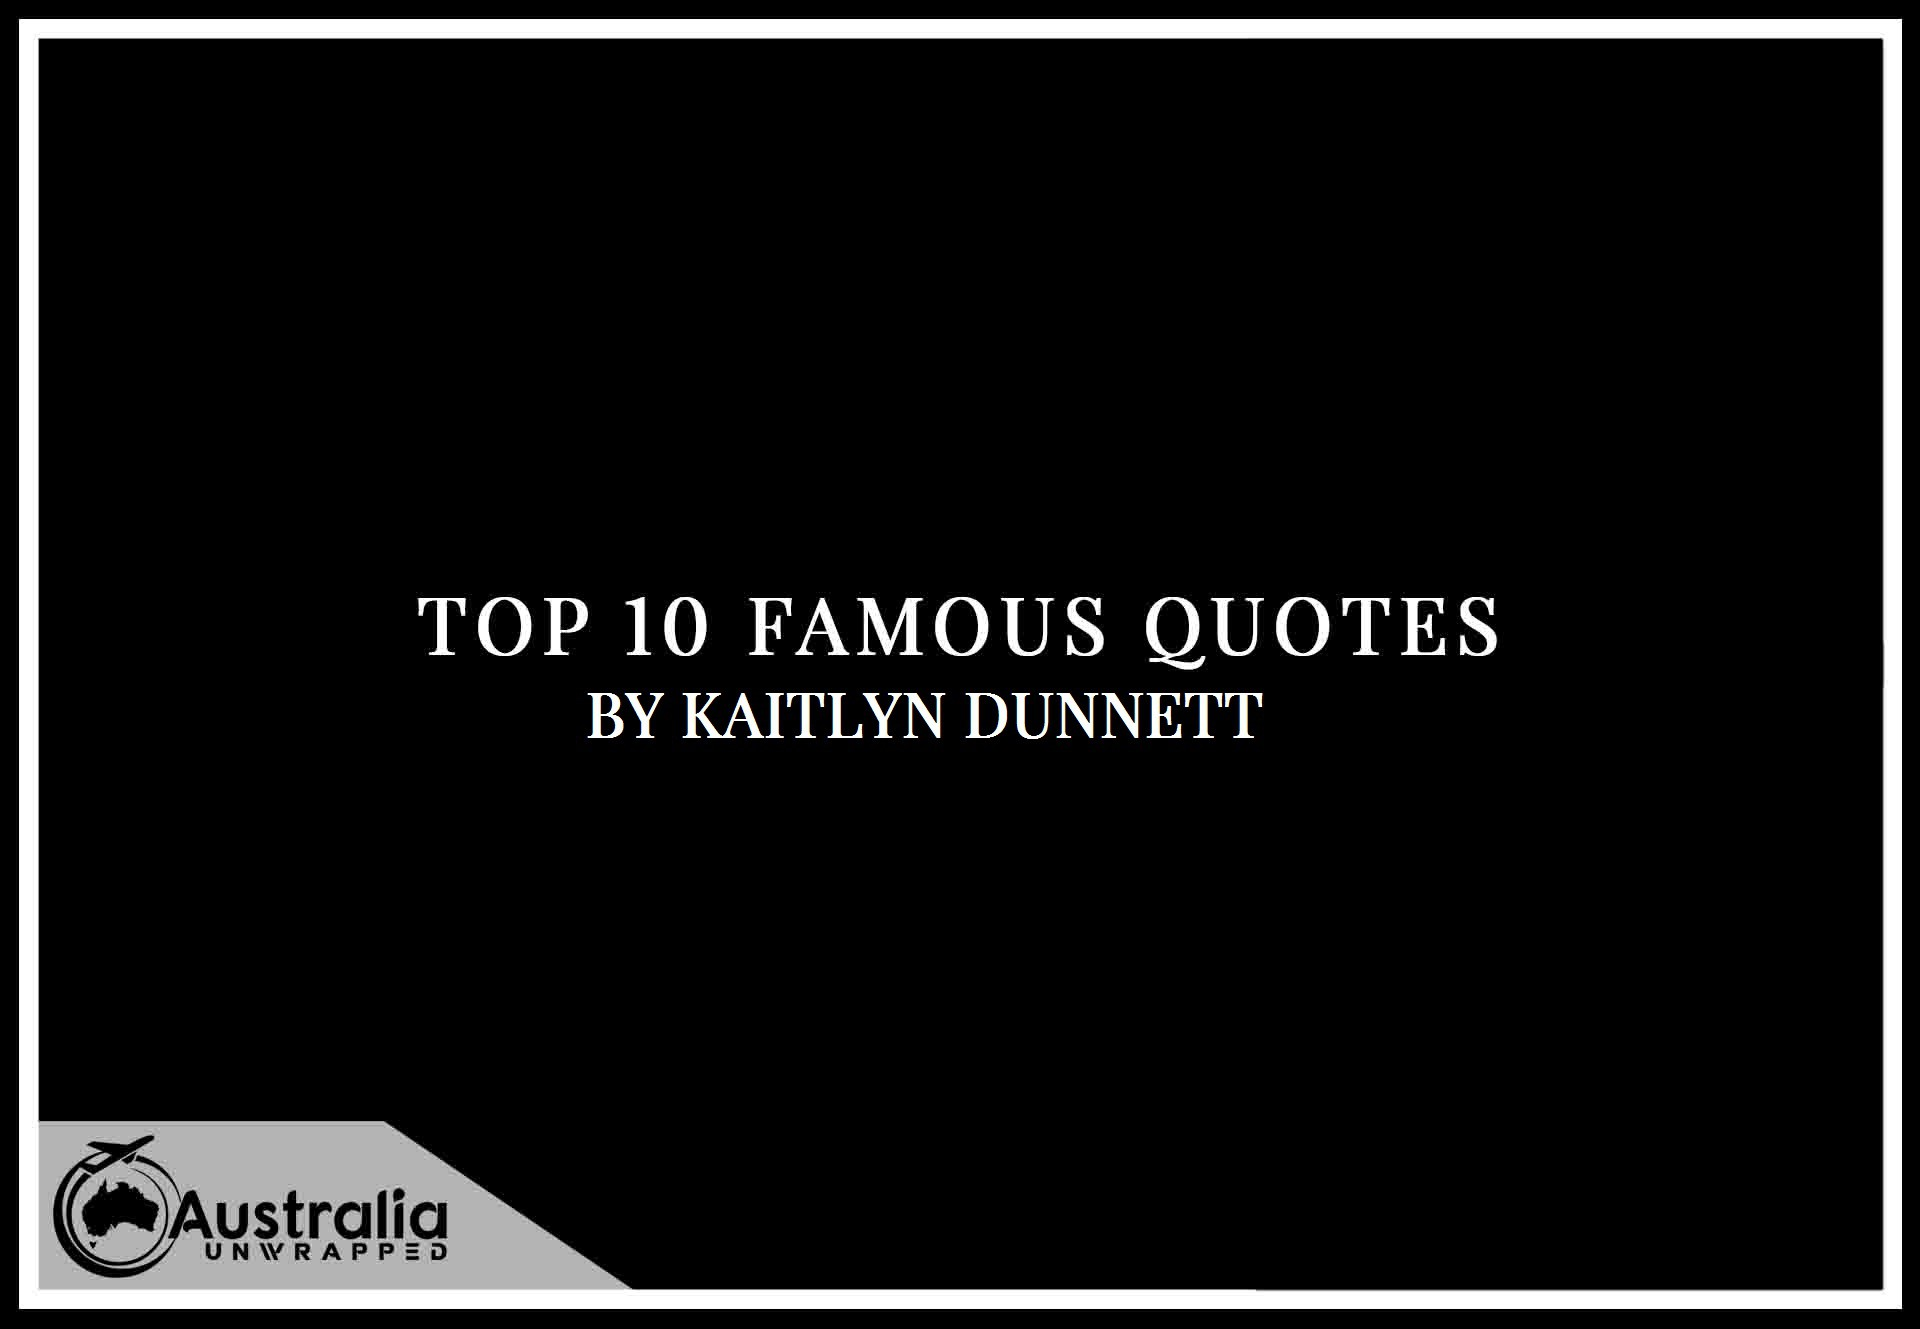 Kaitlyn Dunnett's Top 10 Popular and Famous Quotes